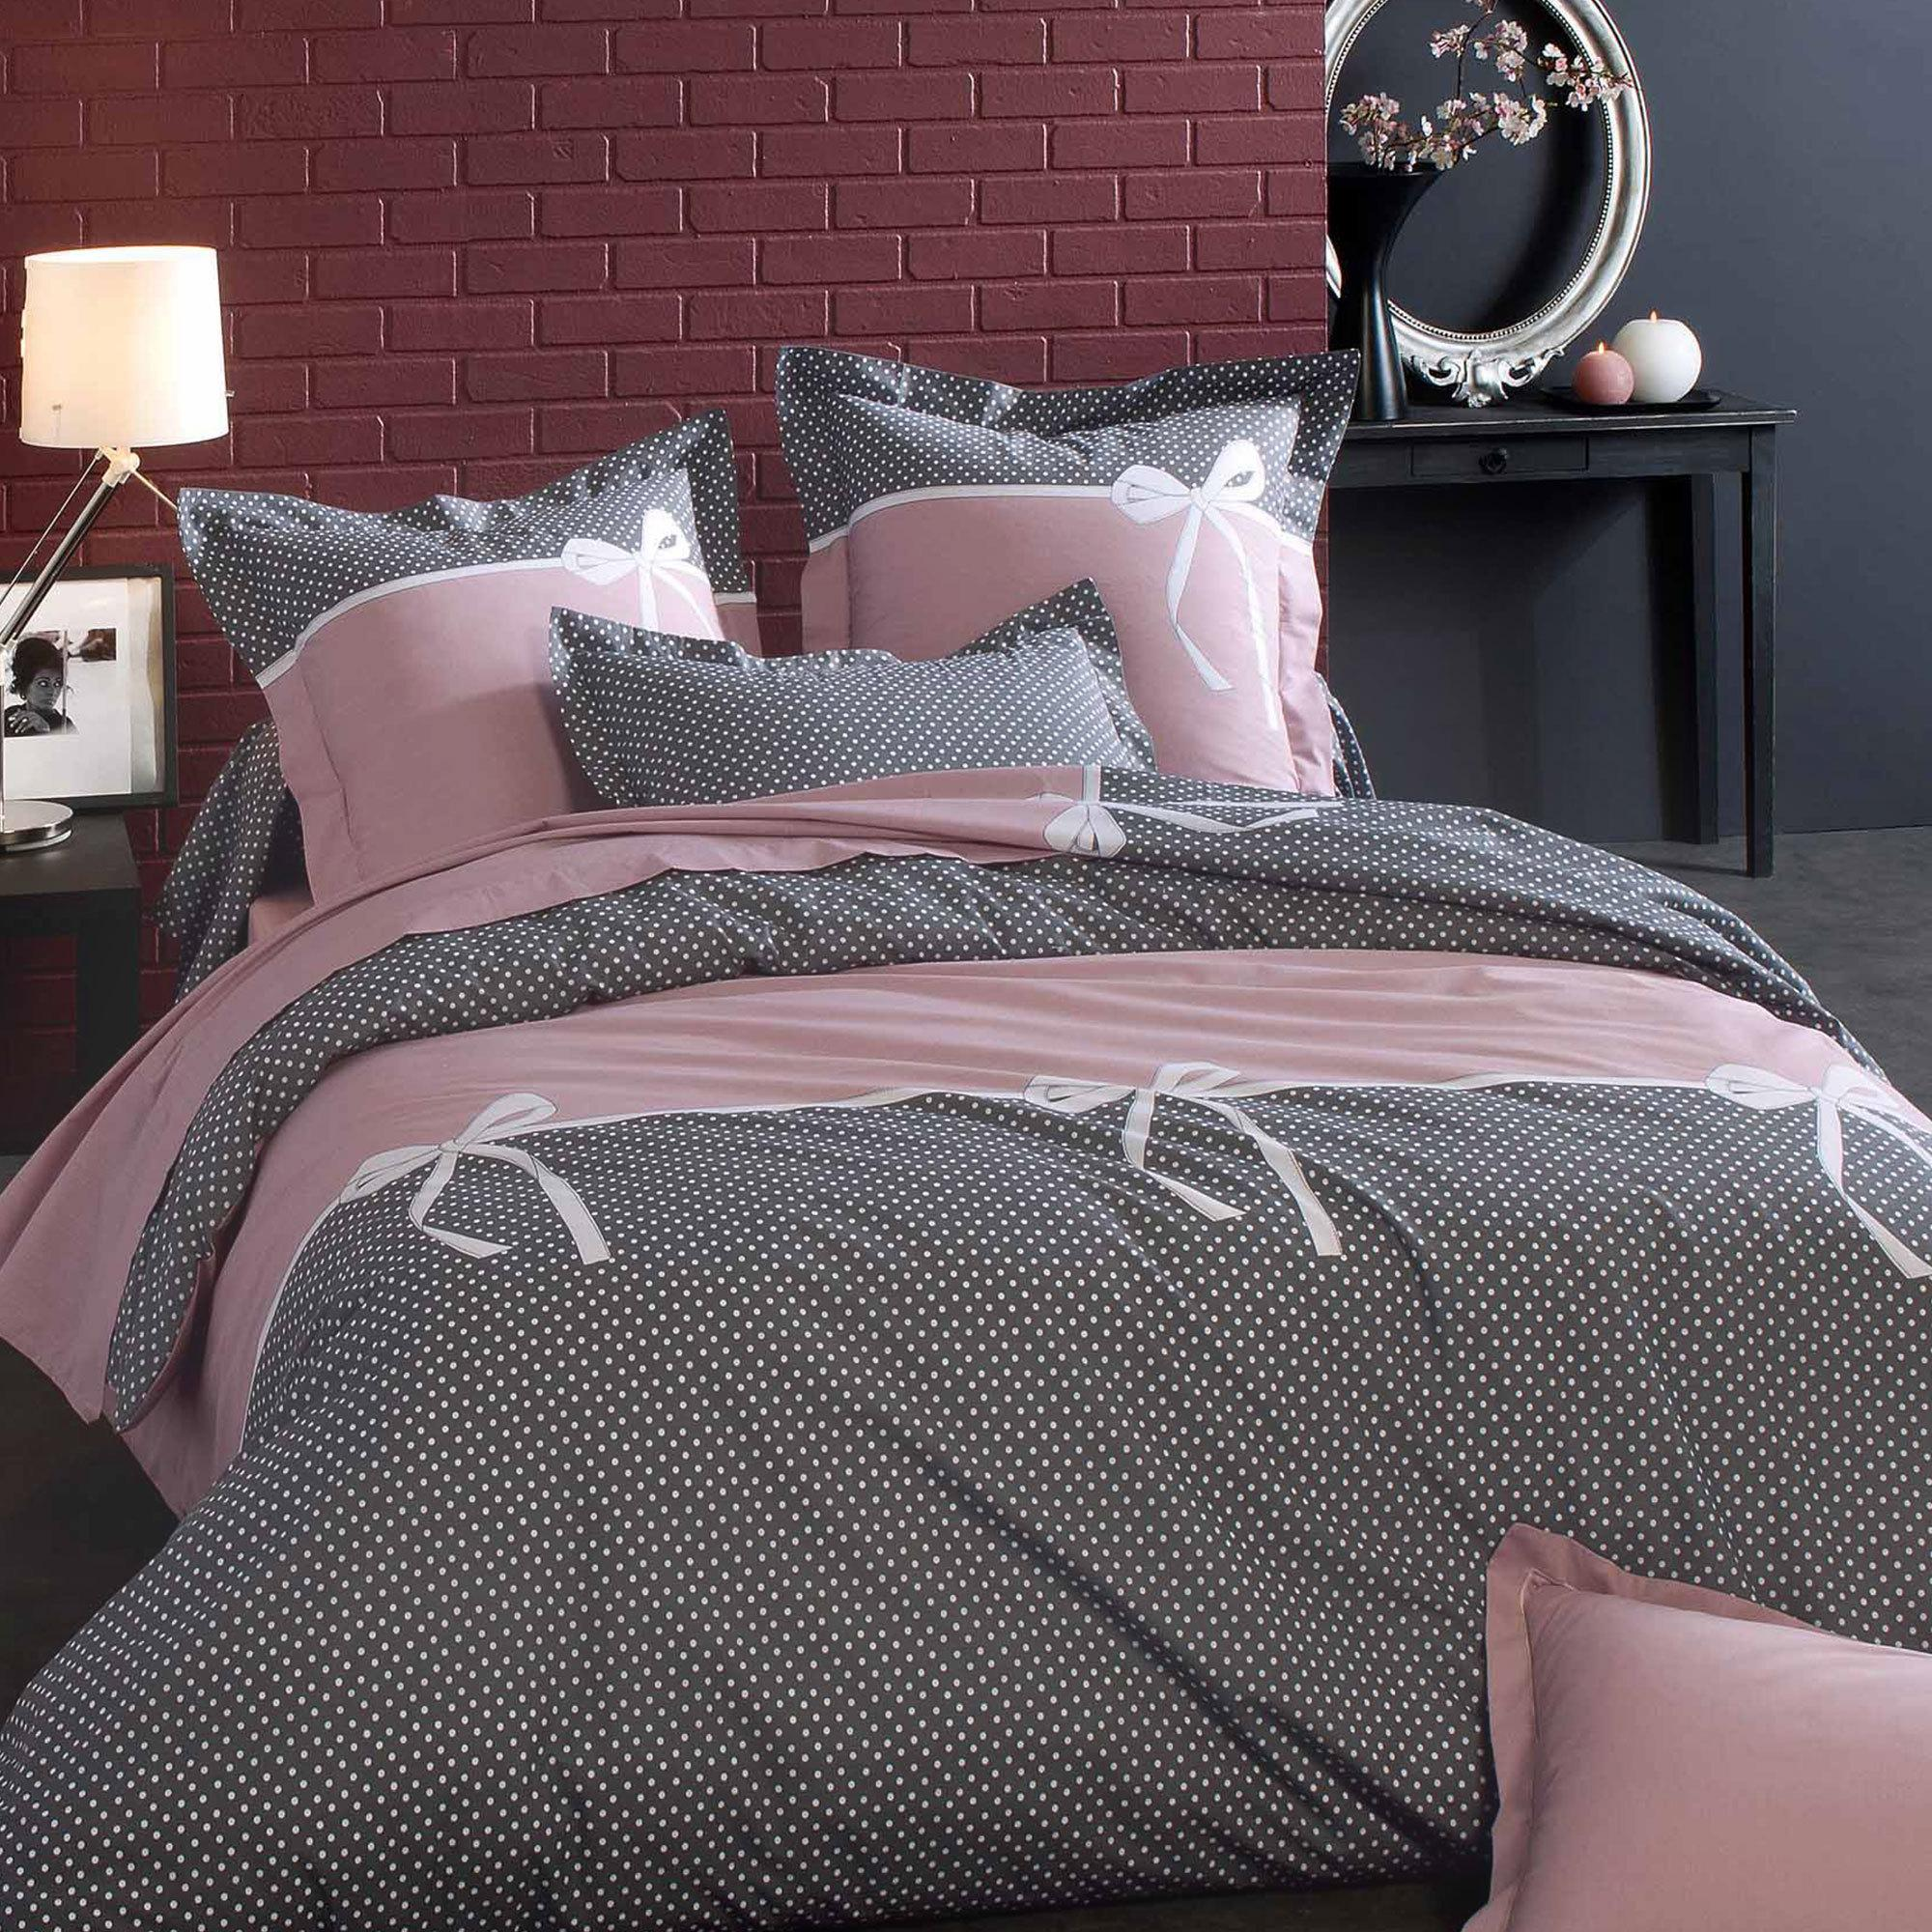 housse de couette 140x200 cm calista linnea vente de linge de maison. Black Bedroom Furniture Sets. Home Design Ideas